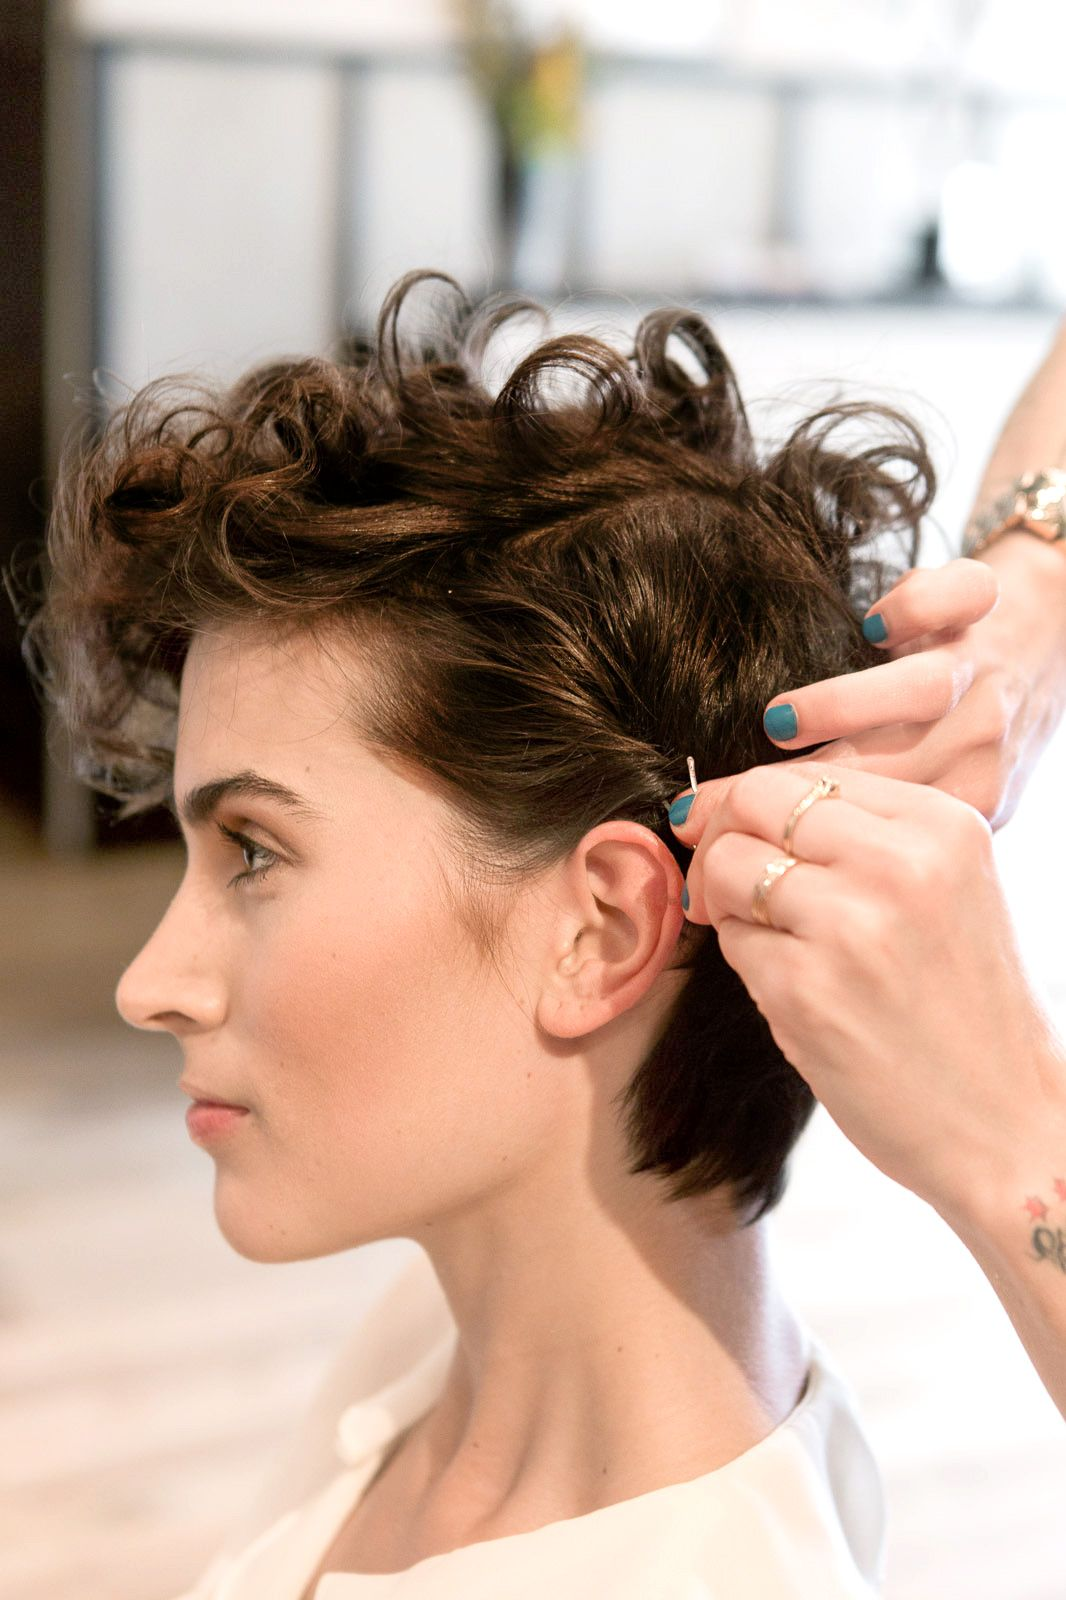 easy ways to style short hair refinery will try them all